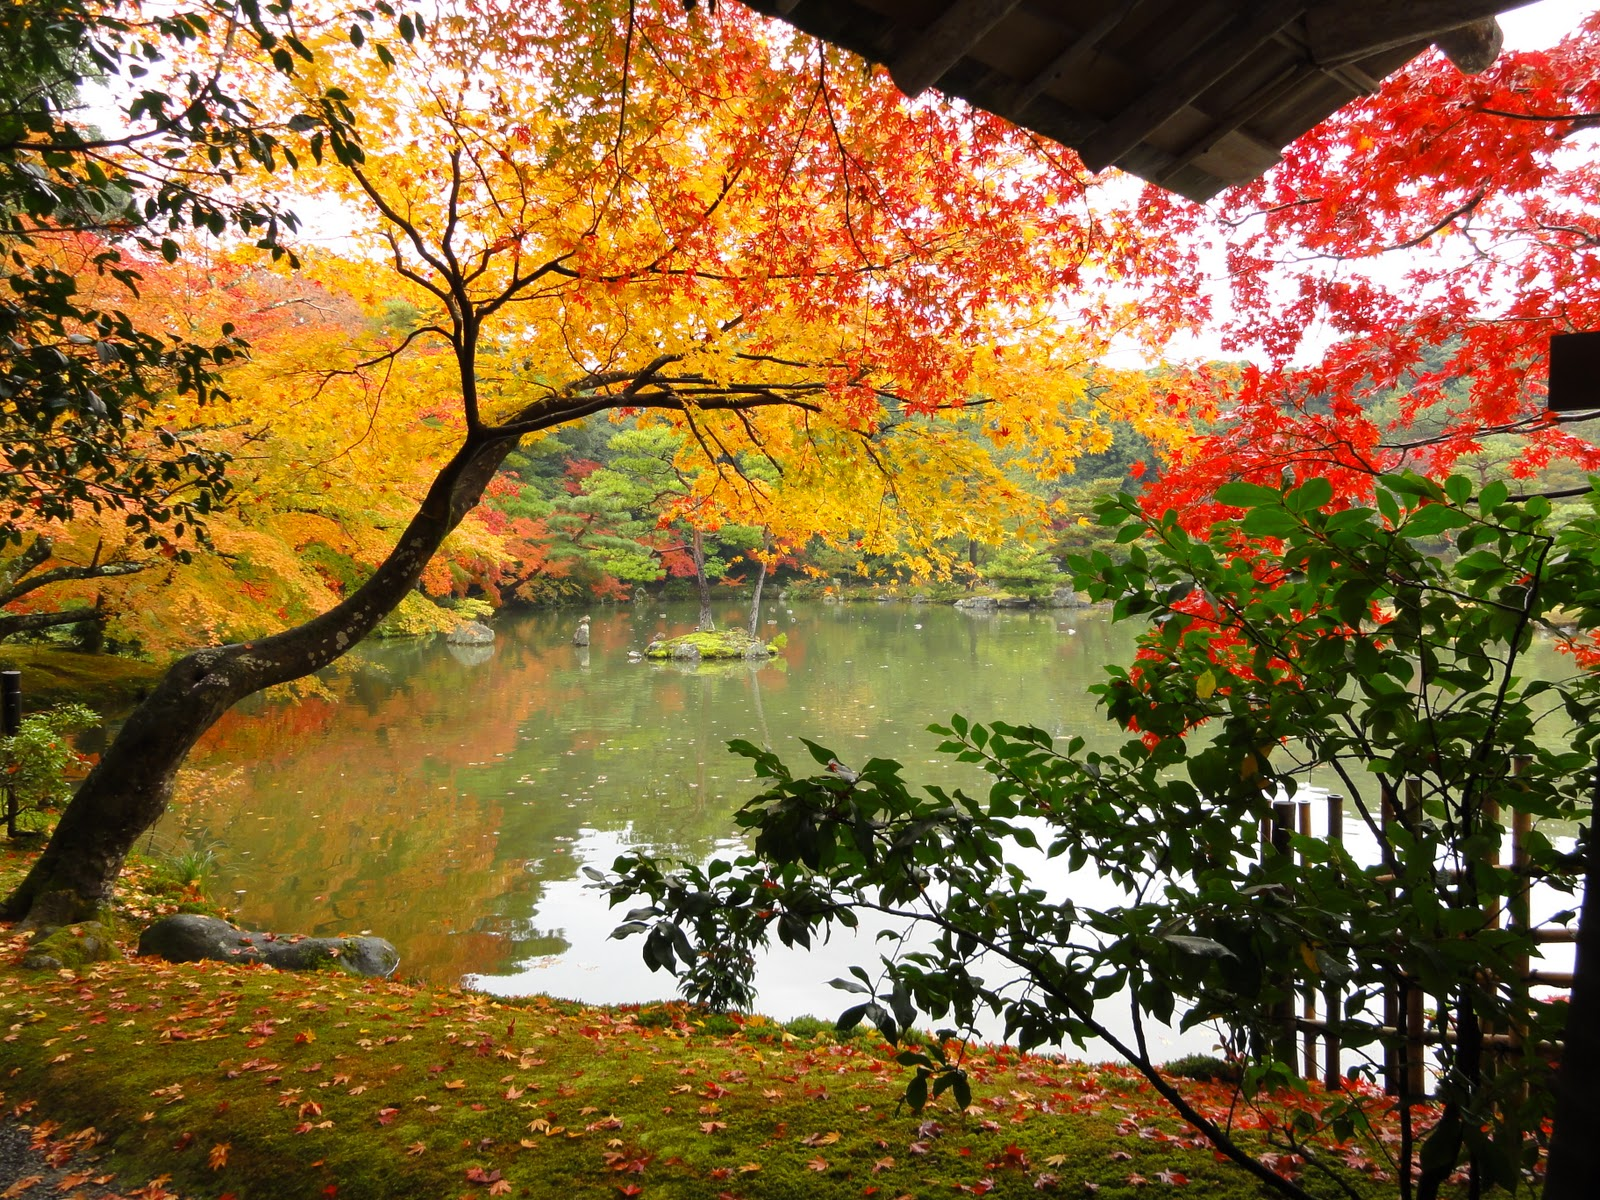 JAPAN_STATION: MUST TO KNOW #3: Four Seasons In Japan